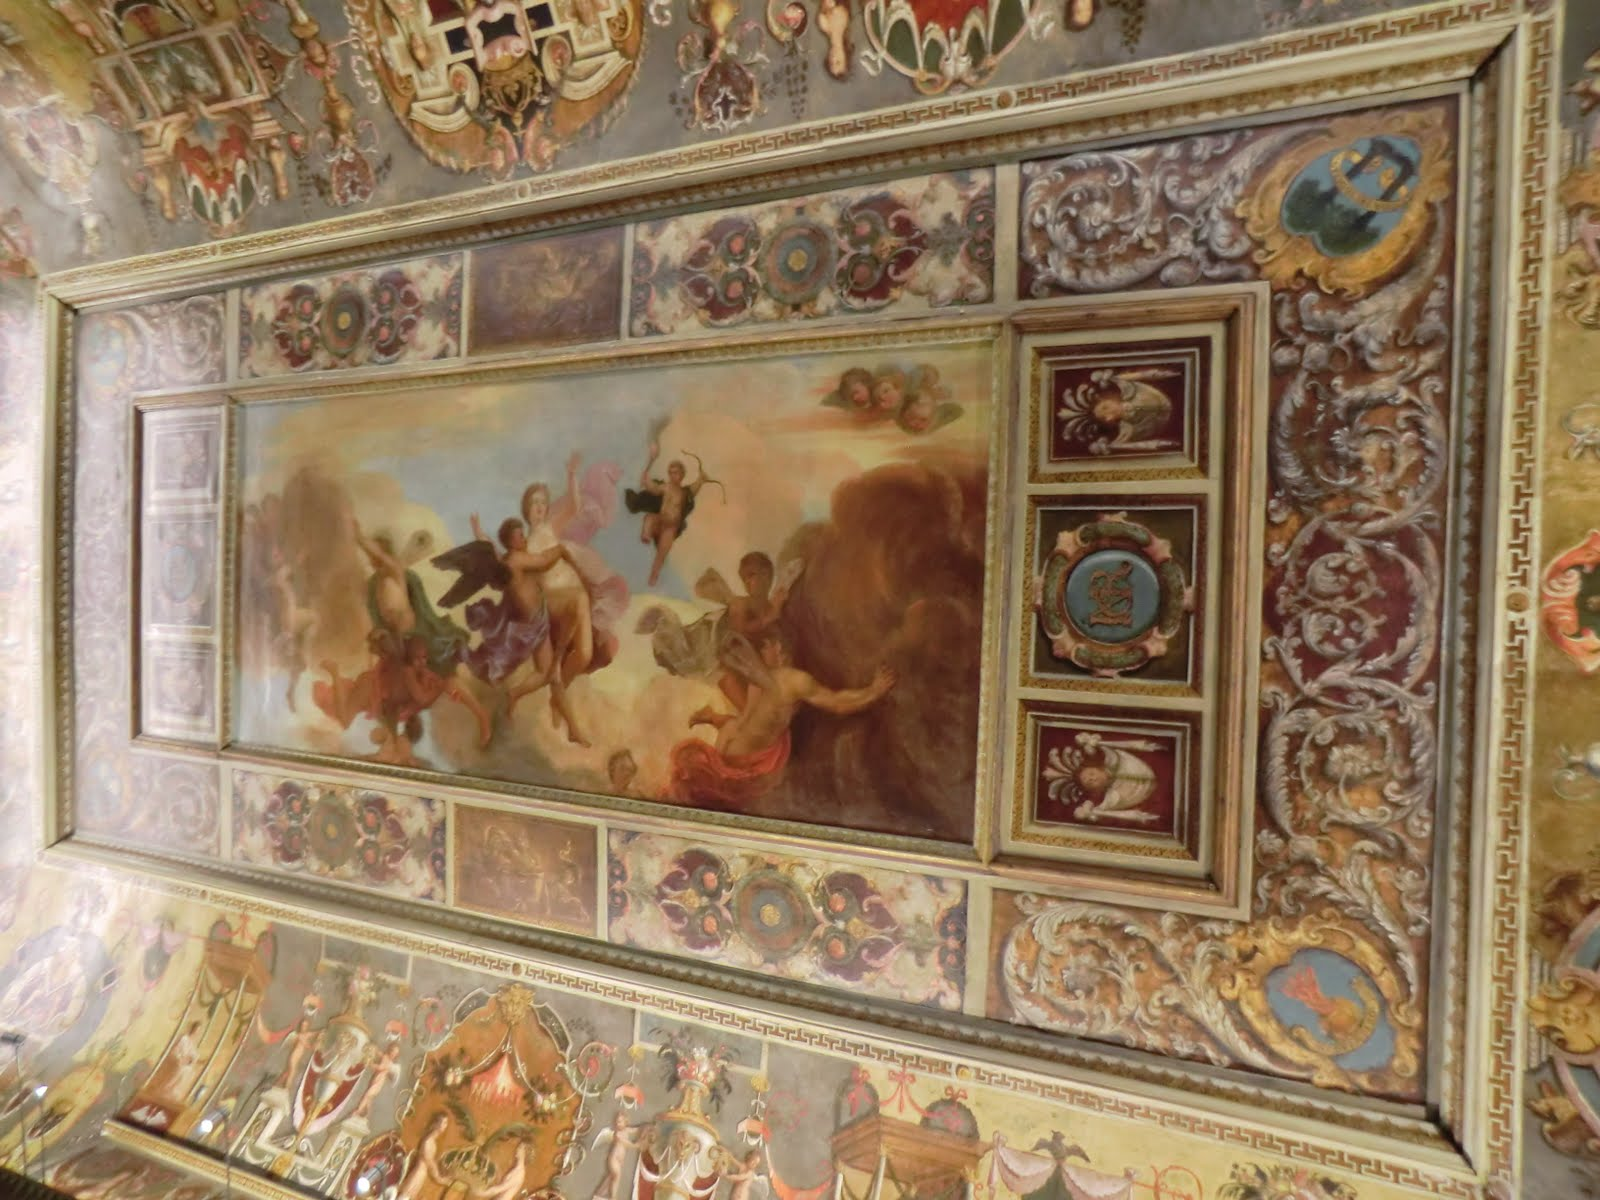 CIMG0368 Ceiling, the Queen's Bedchamber